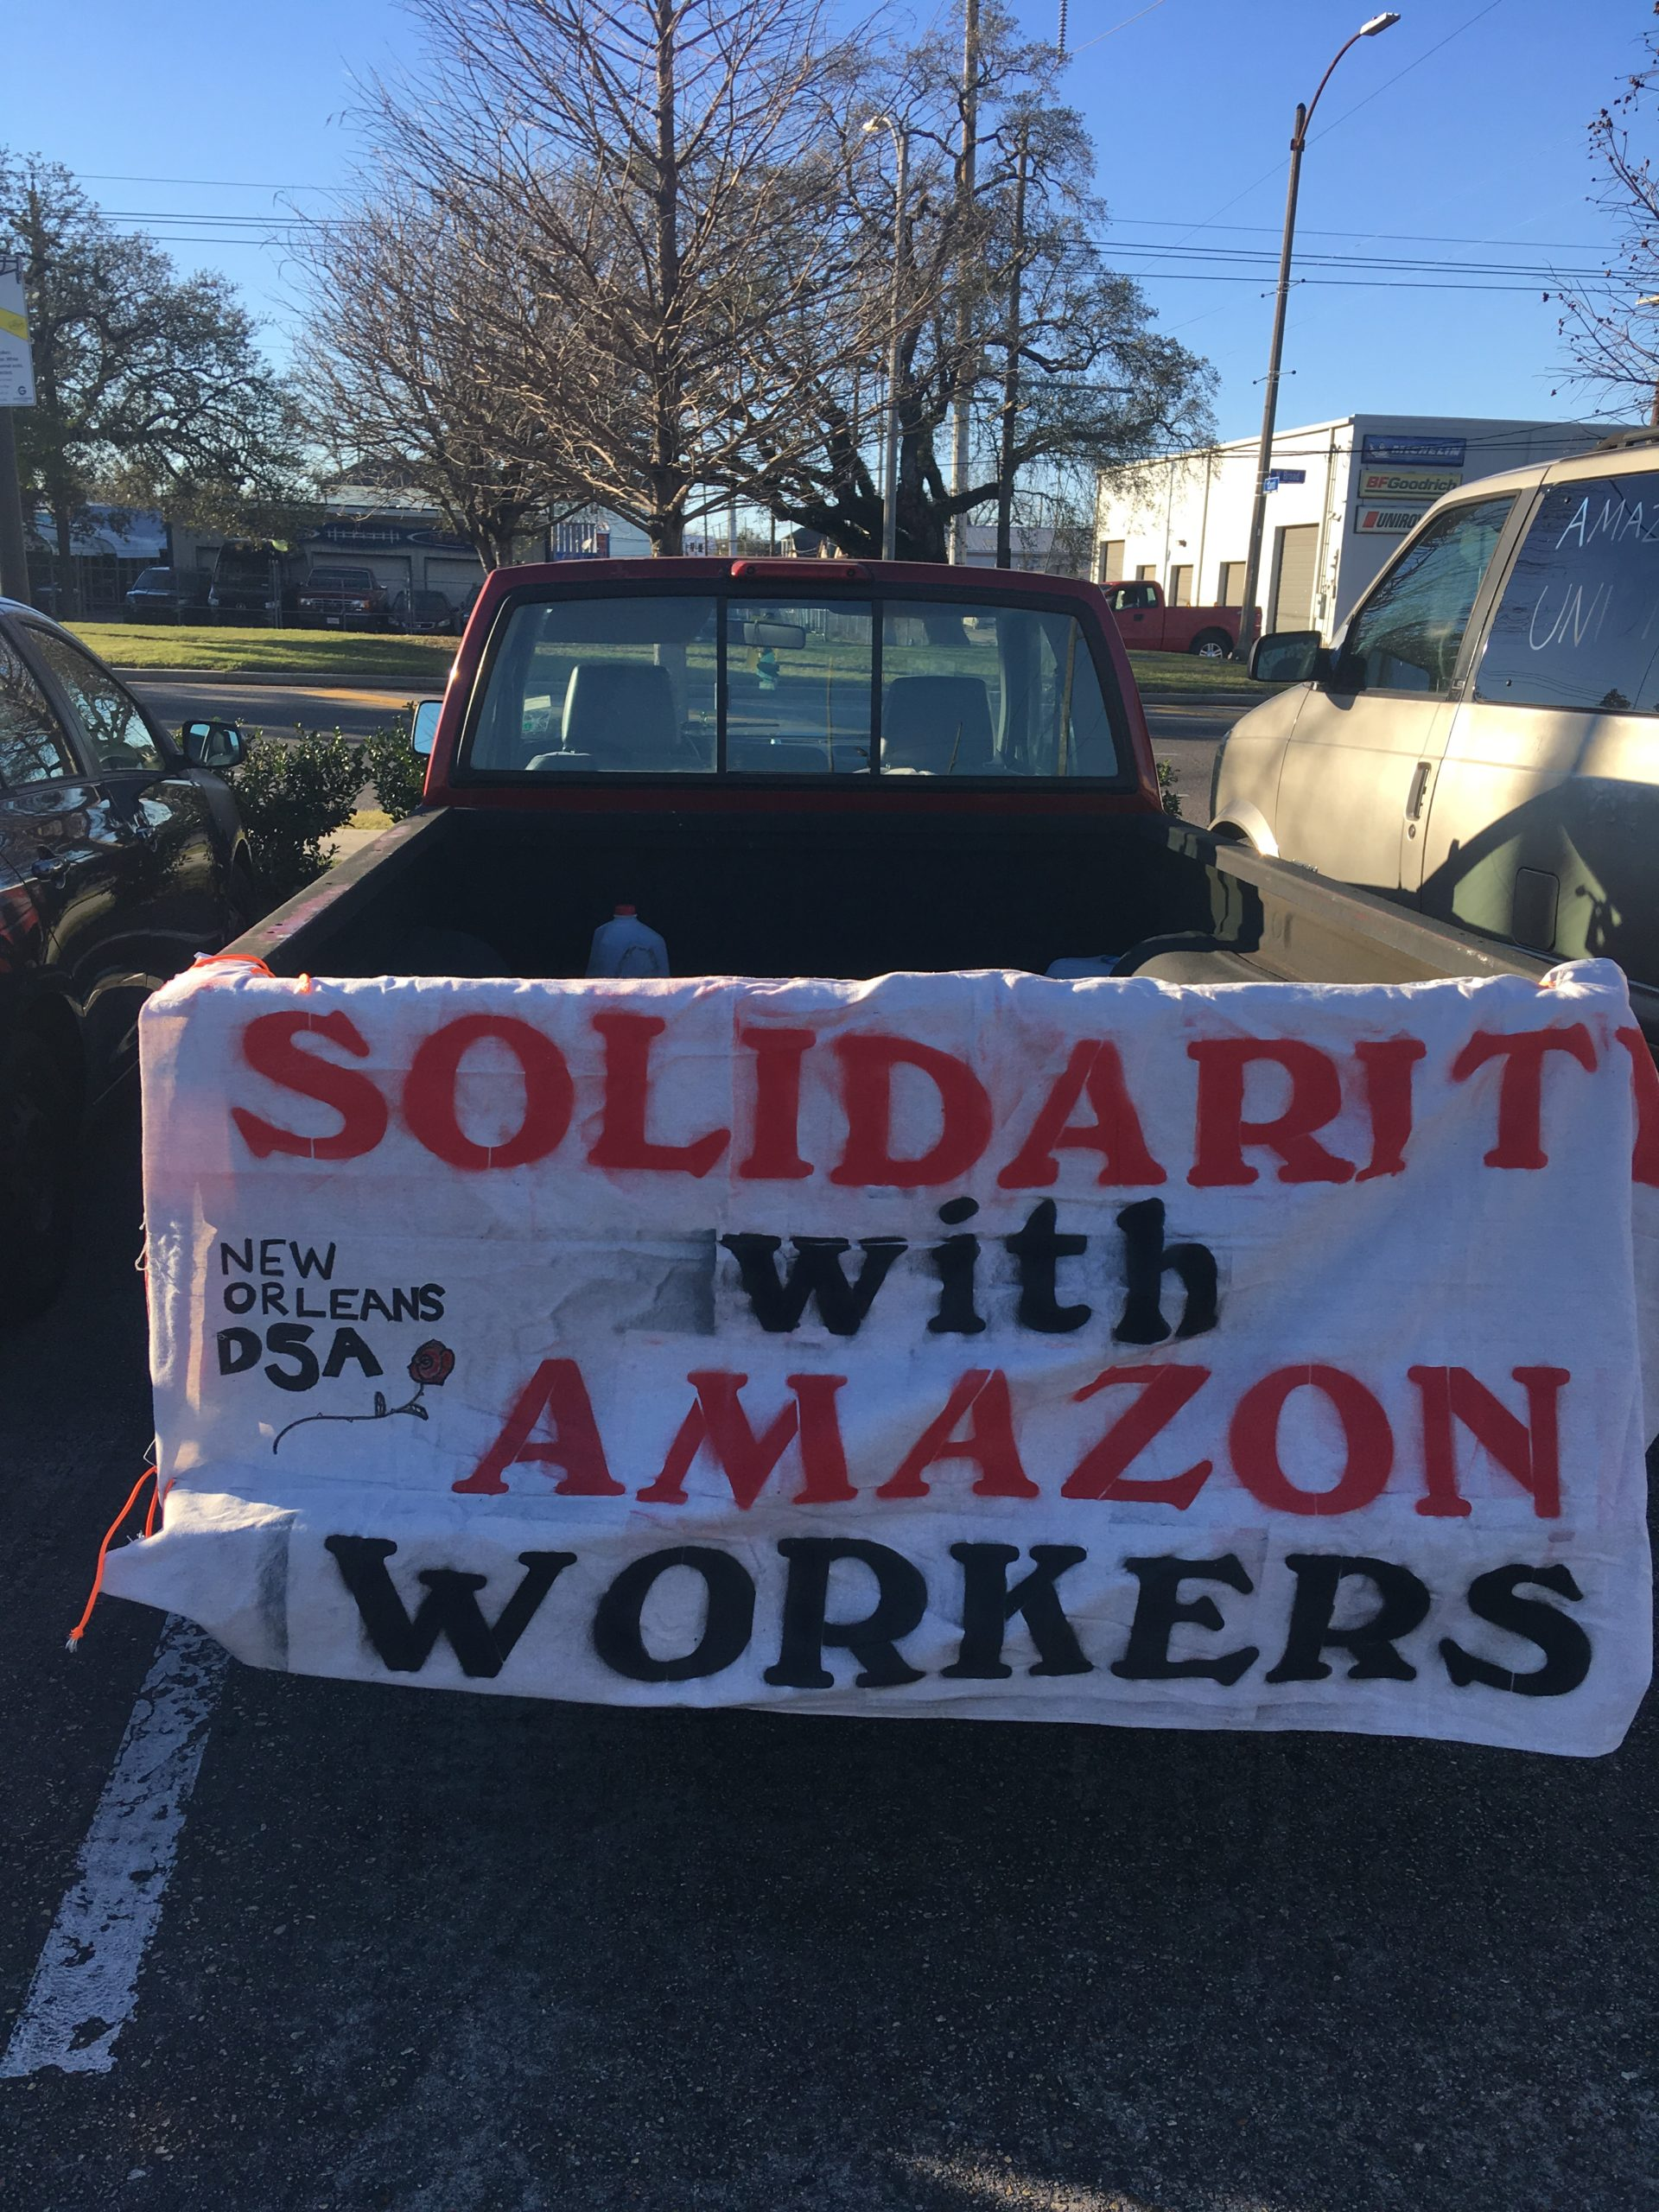 """pickup truck with a banner on the tailgate reading """"Solidarity with Amazon Workers"""" and """"New Orleans DSA 🌹"""""""